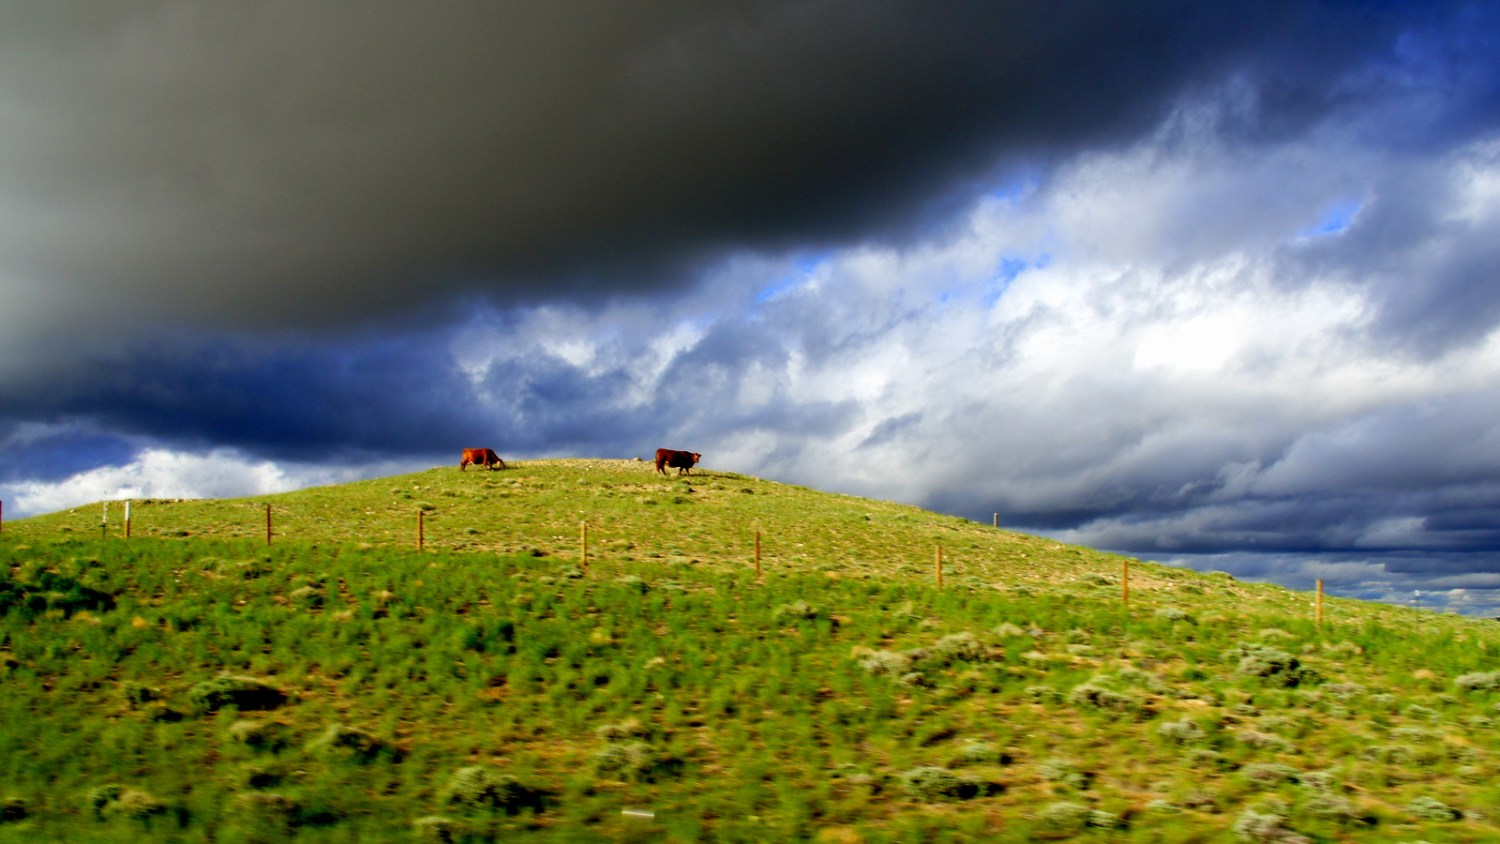 Cows under an incoming storm in the middle of nowhere Wyoming.